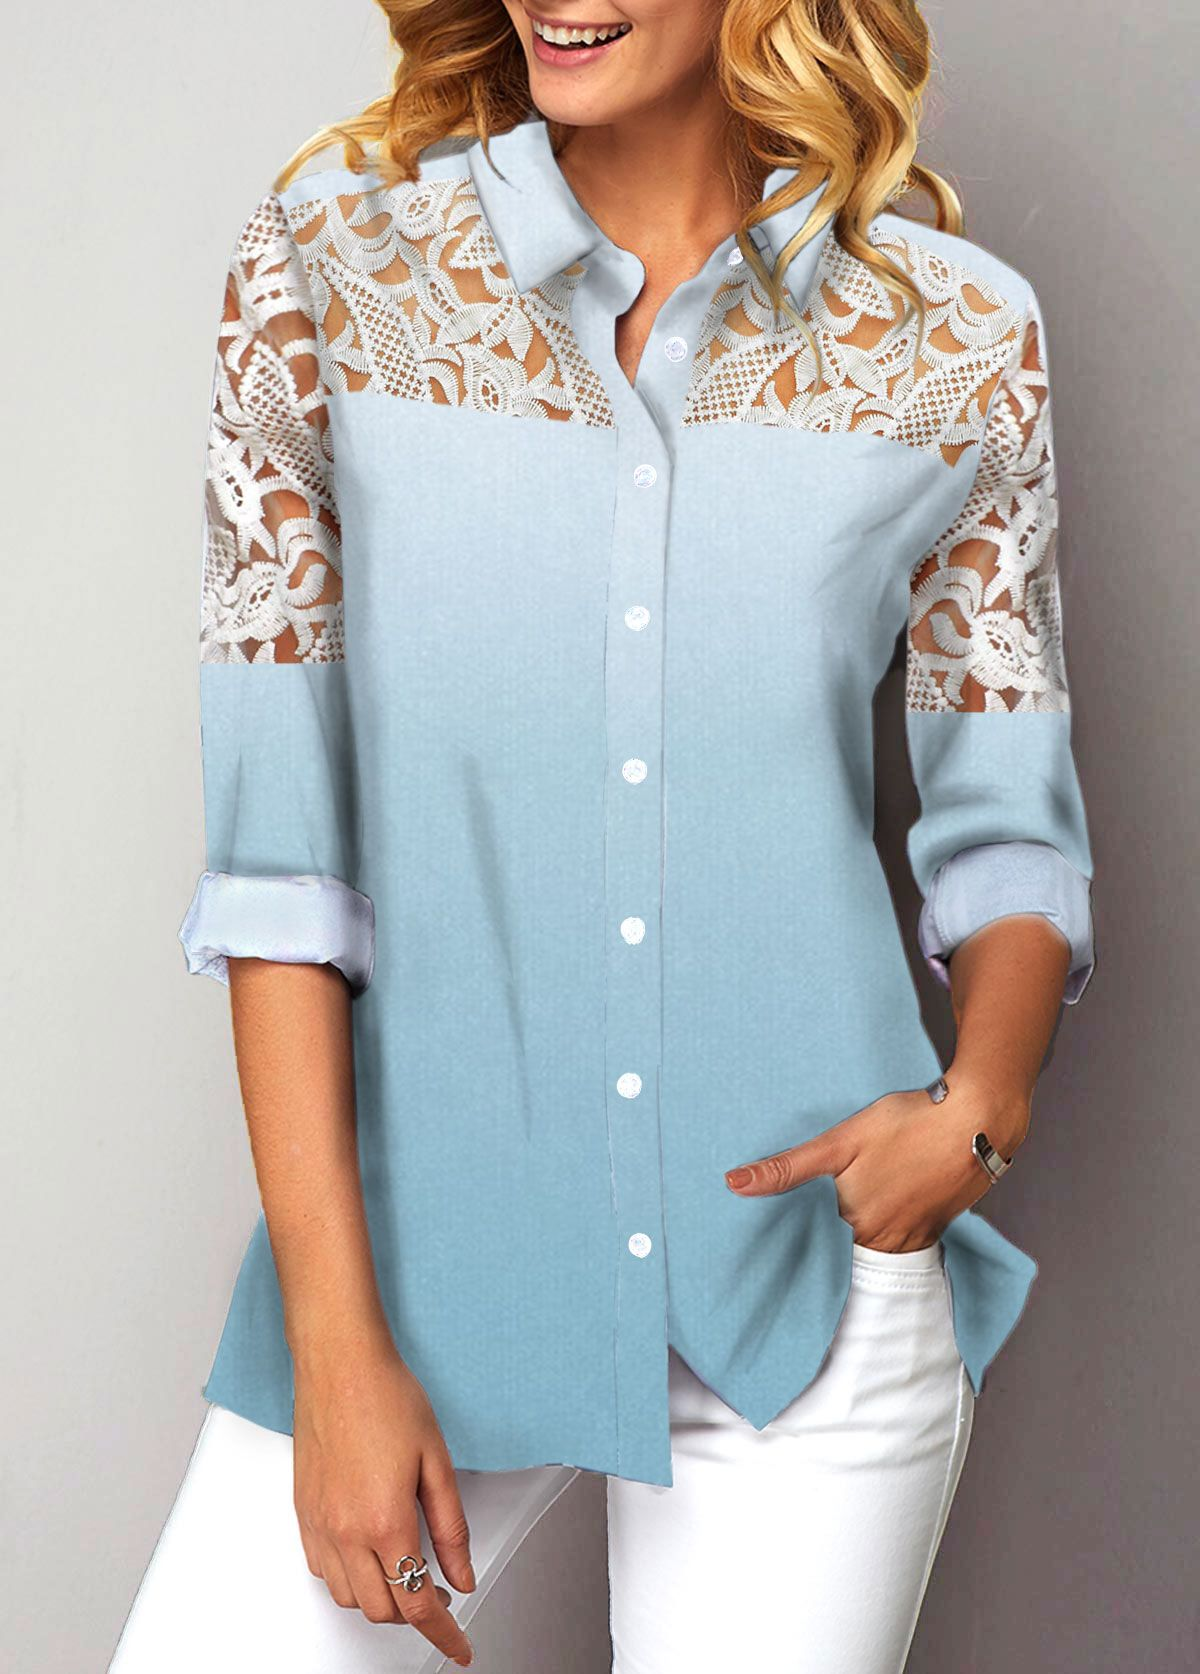 31+ Button up shirts for women ideas ideas in 2021